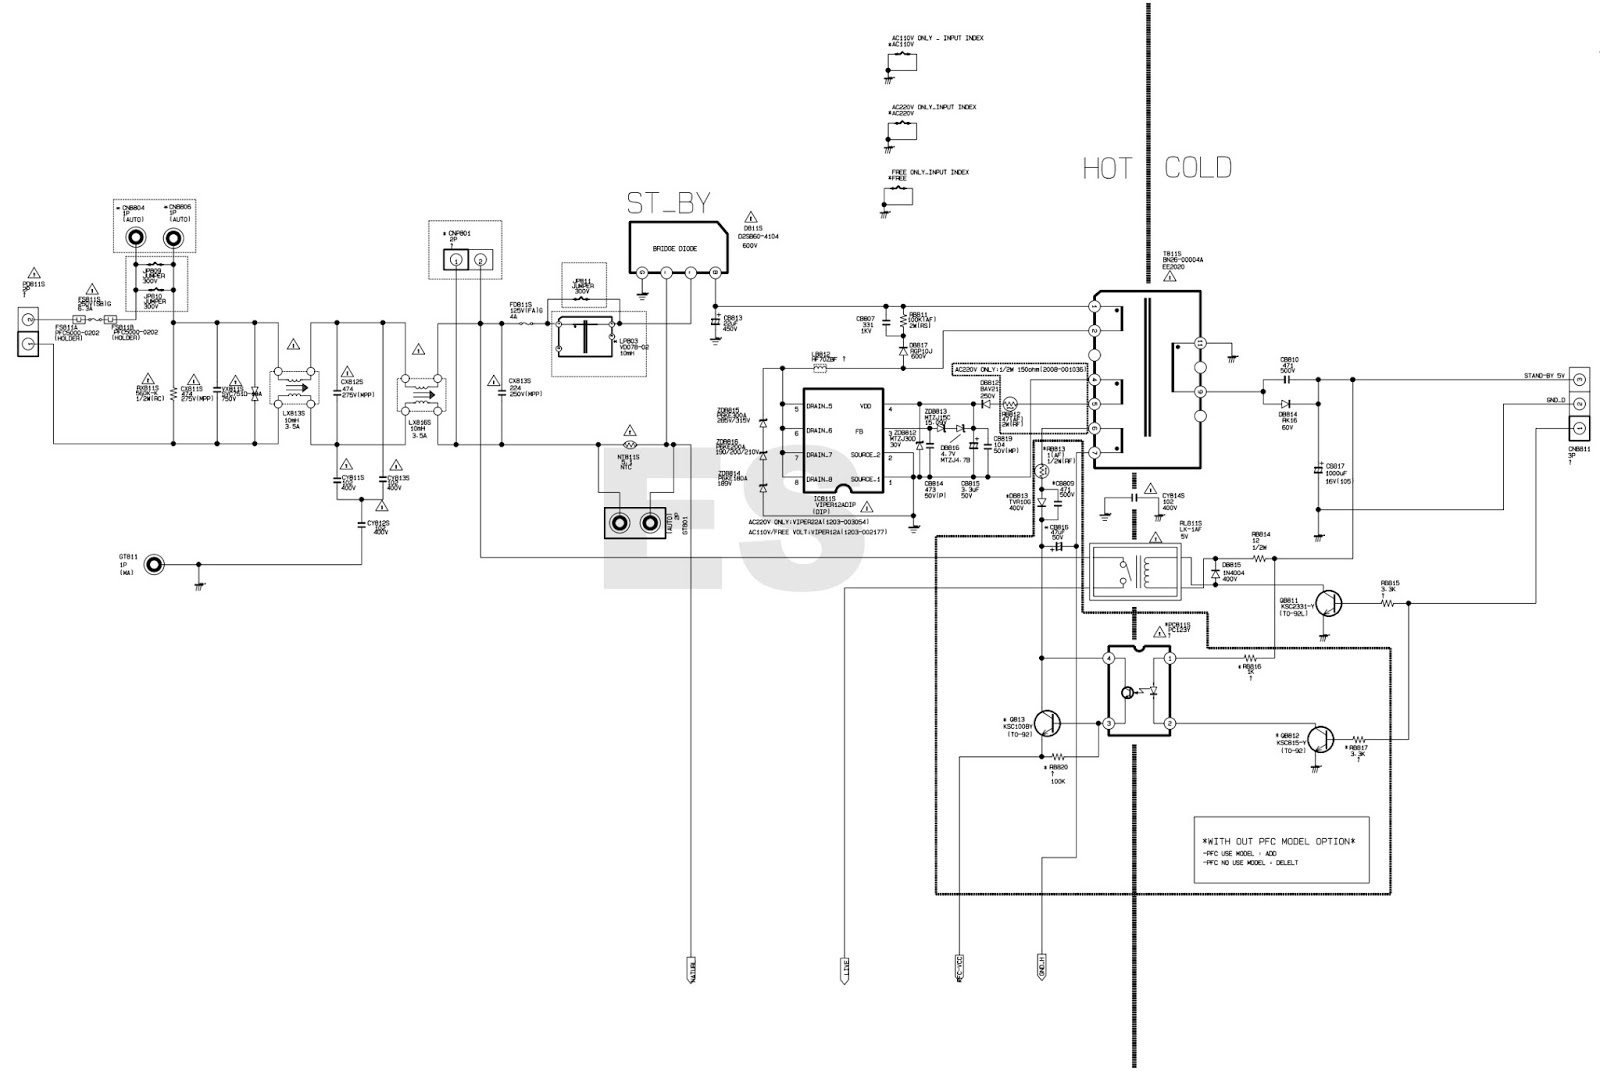 Panasonic Tv Schematic Diagram Wiring Will Be A Thing Washing Machine Pdf Electronic Equipment Repair Centre Samsung Bn44 00622b Lcd